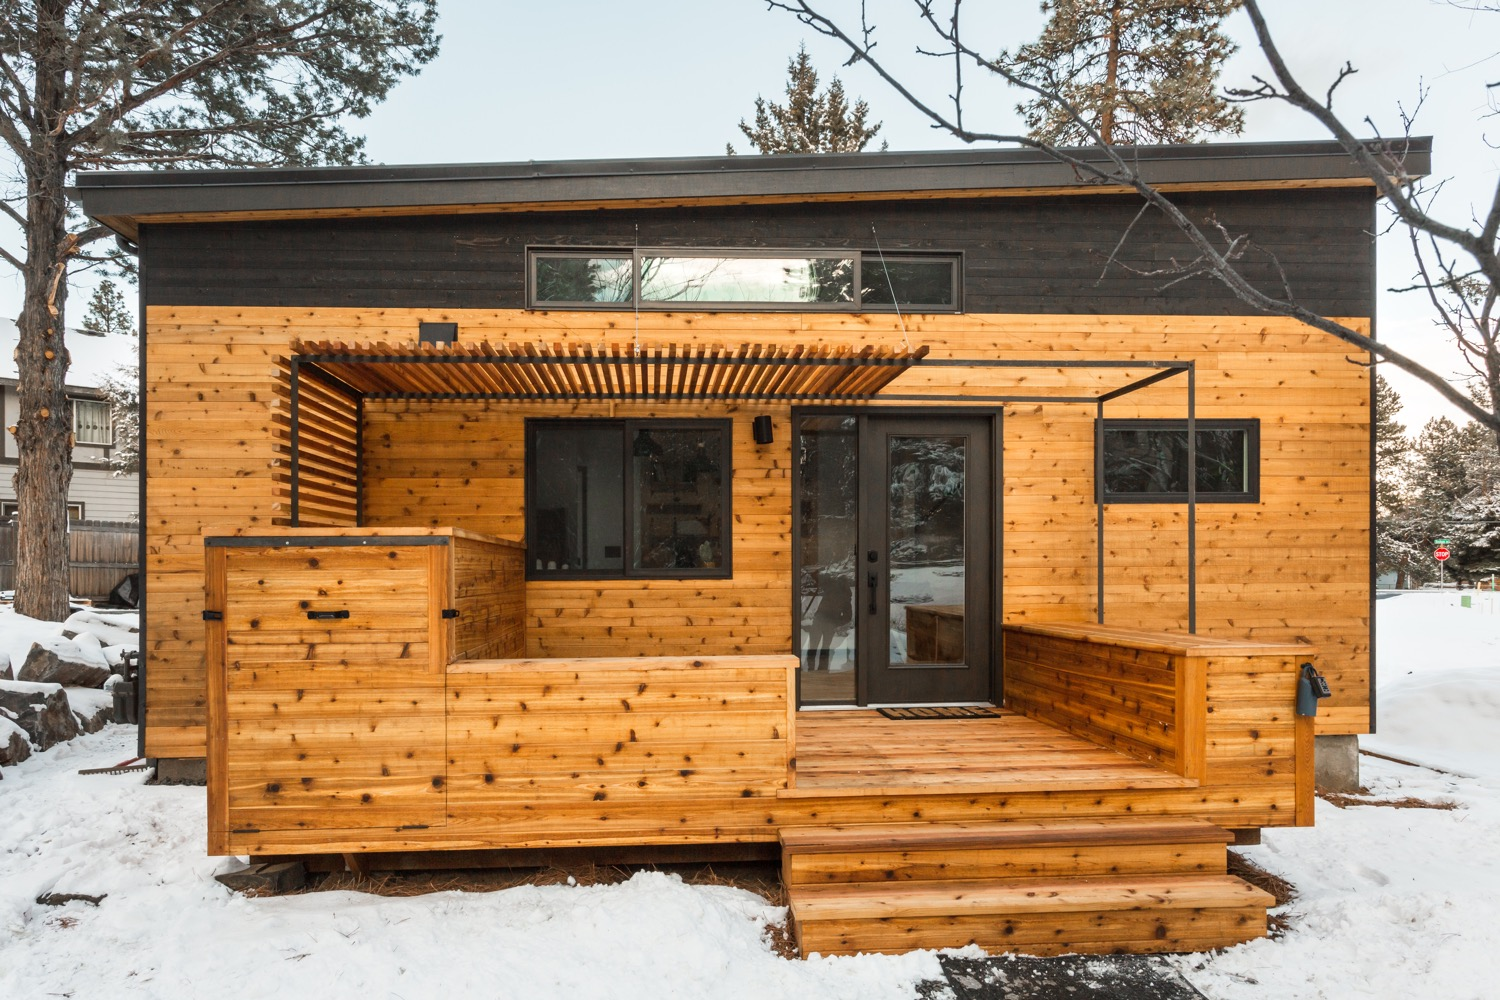 The Incredible Hiatus Tiny House Built for Tiny Cottage Community in Bend, Oregon